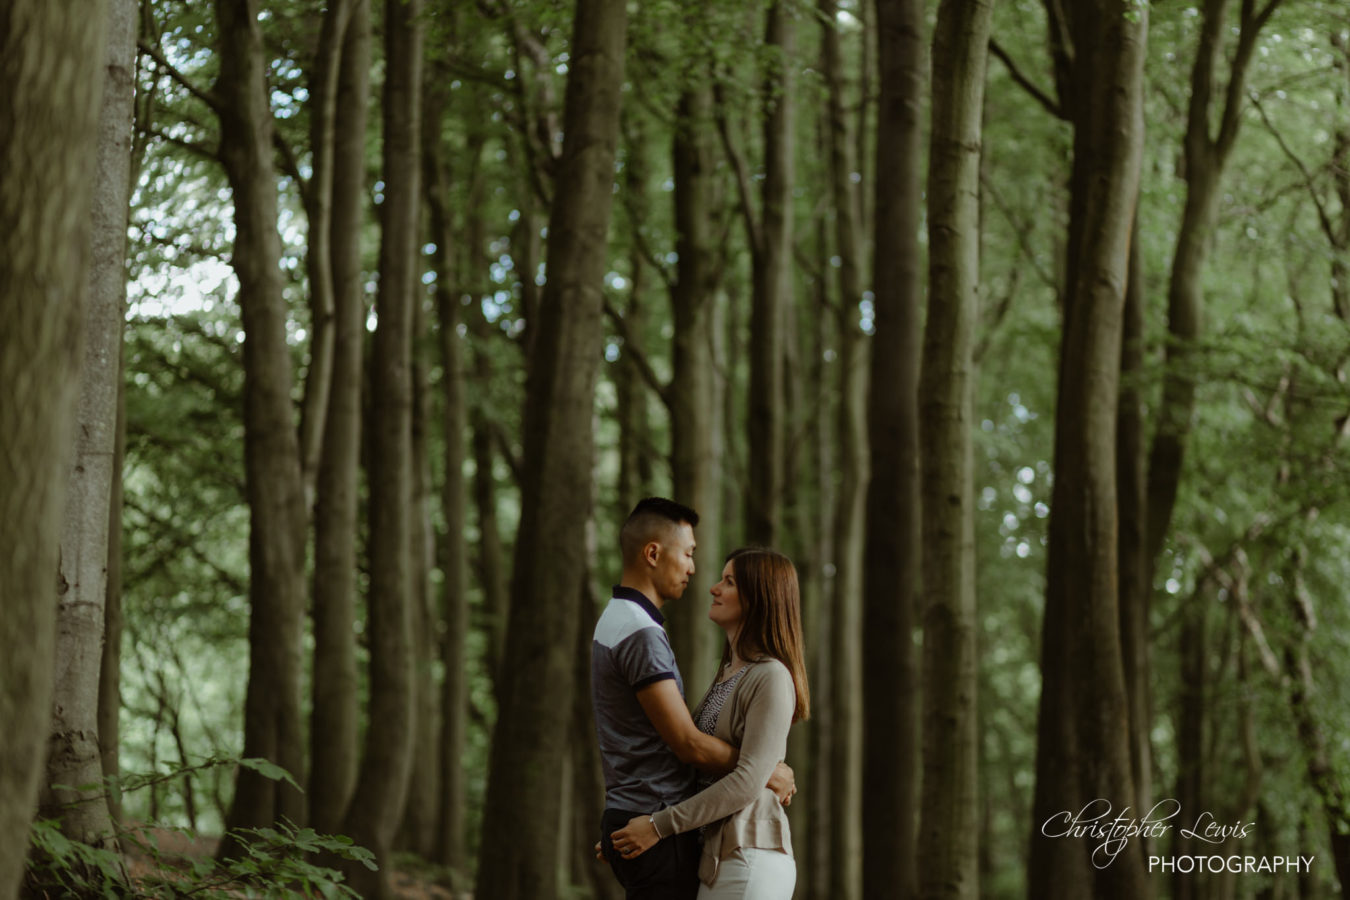 Cranage-Hall-Pre-Wedding-Photo-20